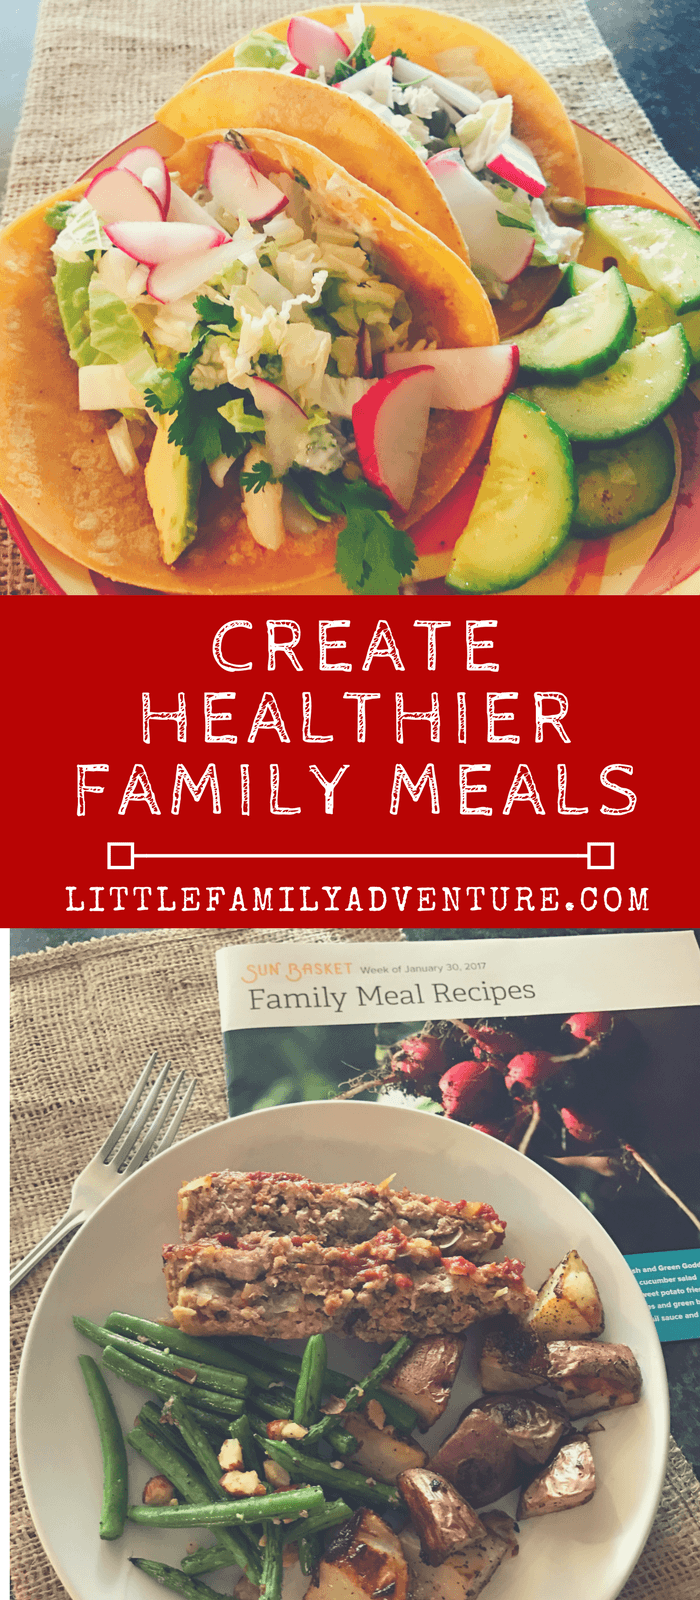 Create healthy family meal recipes with sun basket bbq meatloaf create healthier meals for your family that they will want to get in the kitchen to create sun basket meal delivery service provides organic family style forumfinder Images